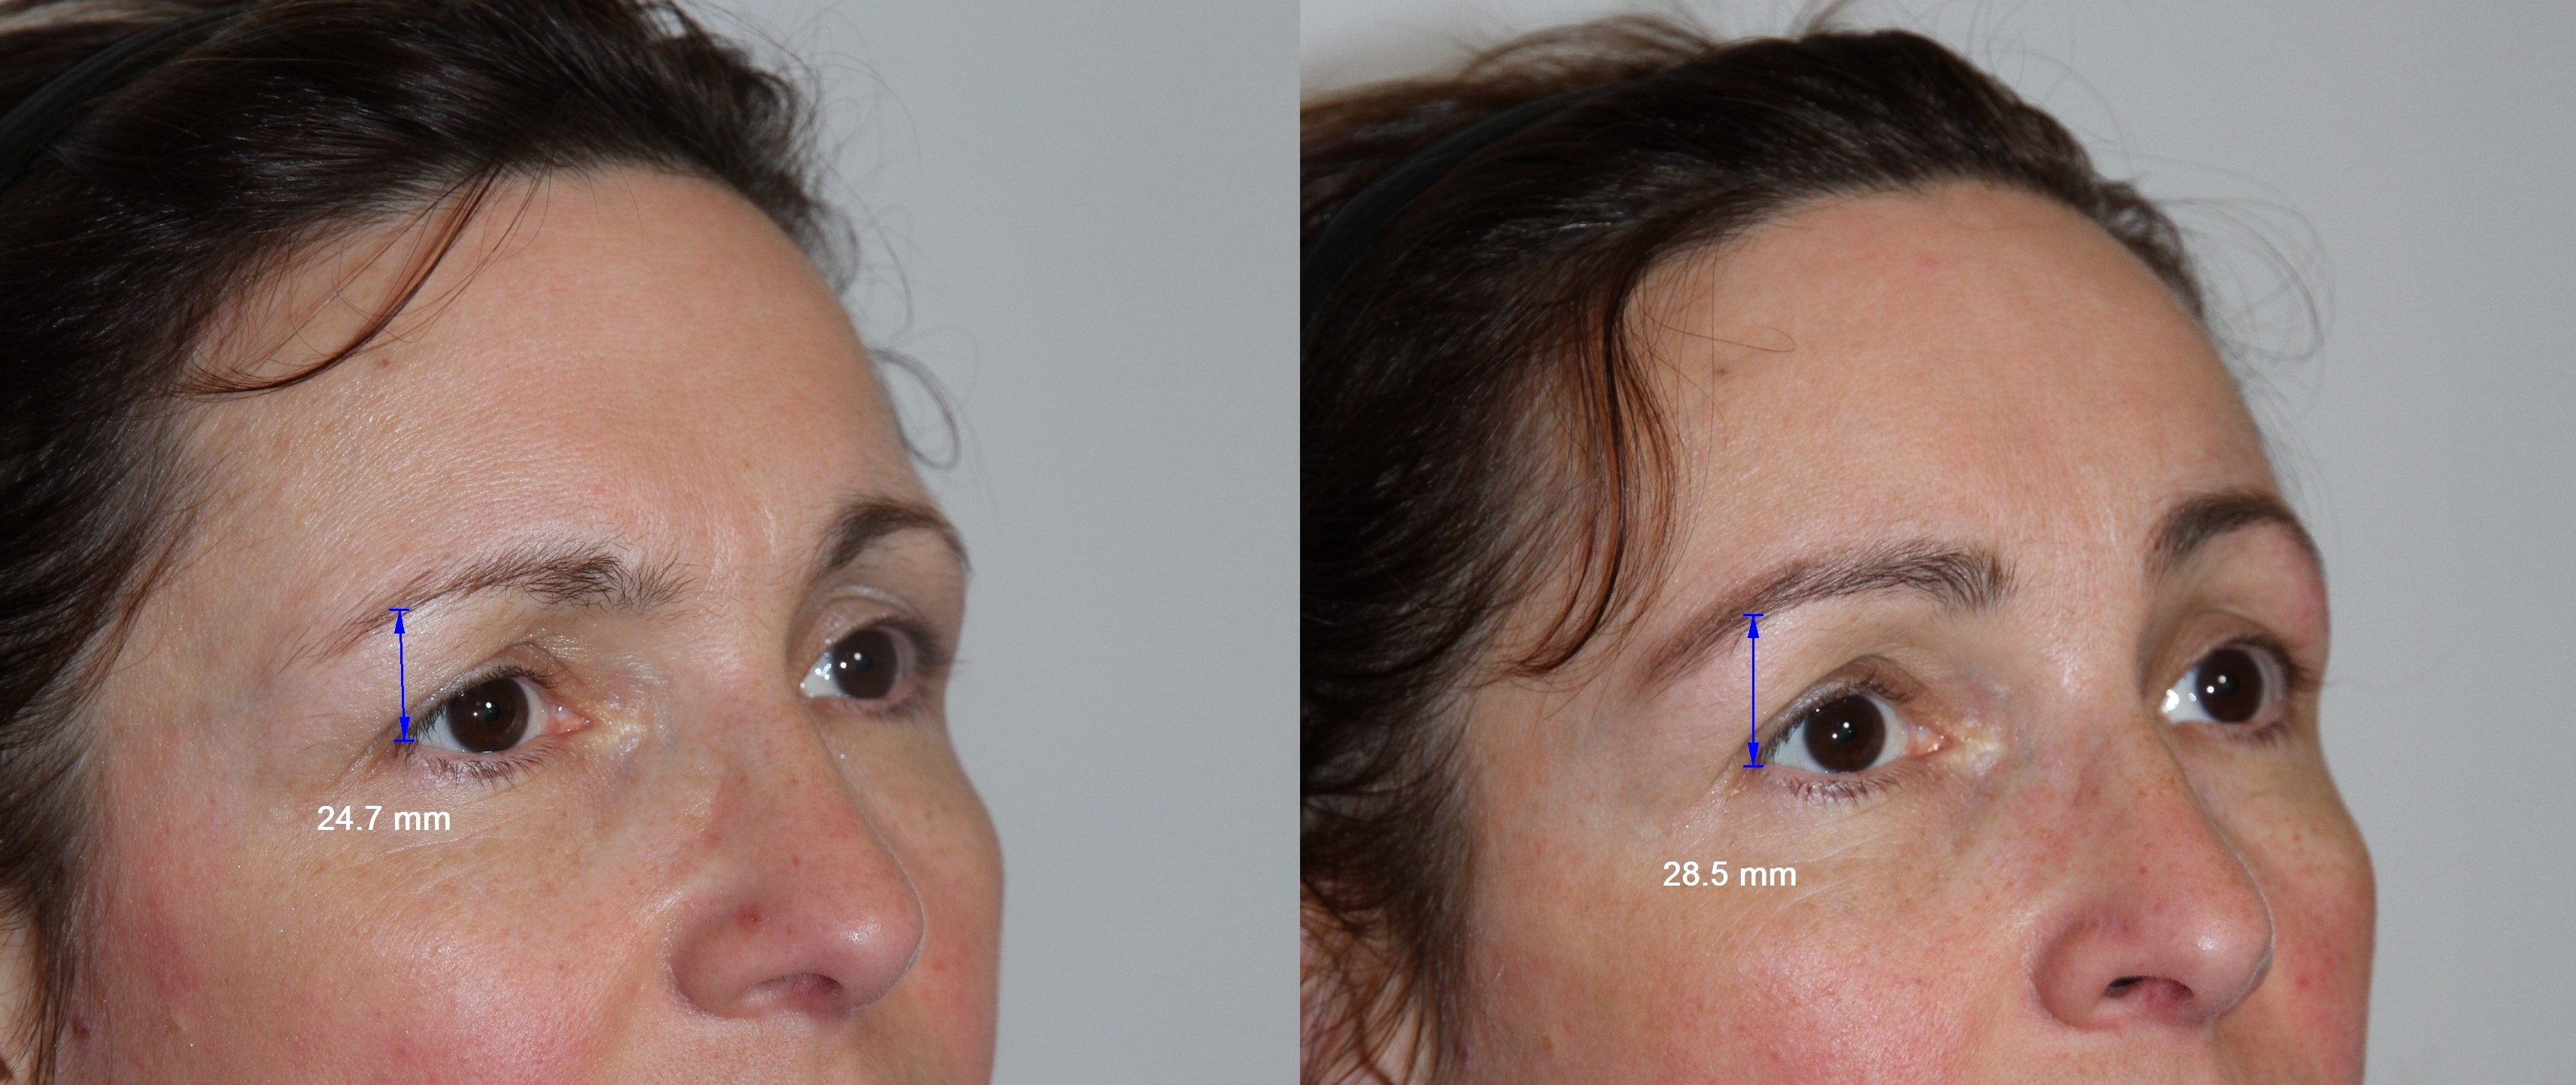 Photo Showing the result after an endoscopic eyebrow lift and facial lipofilling